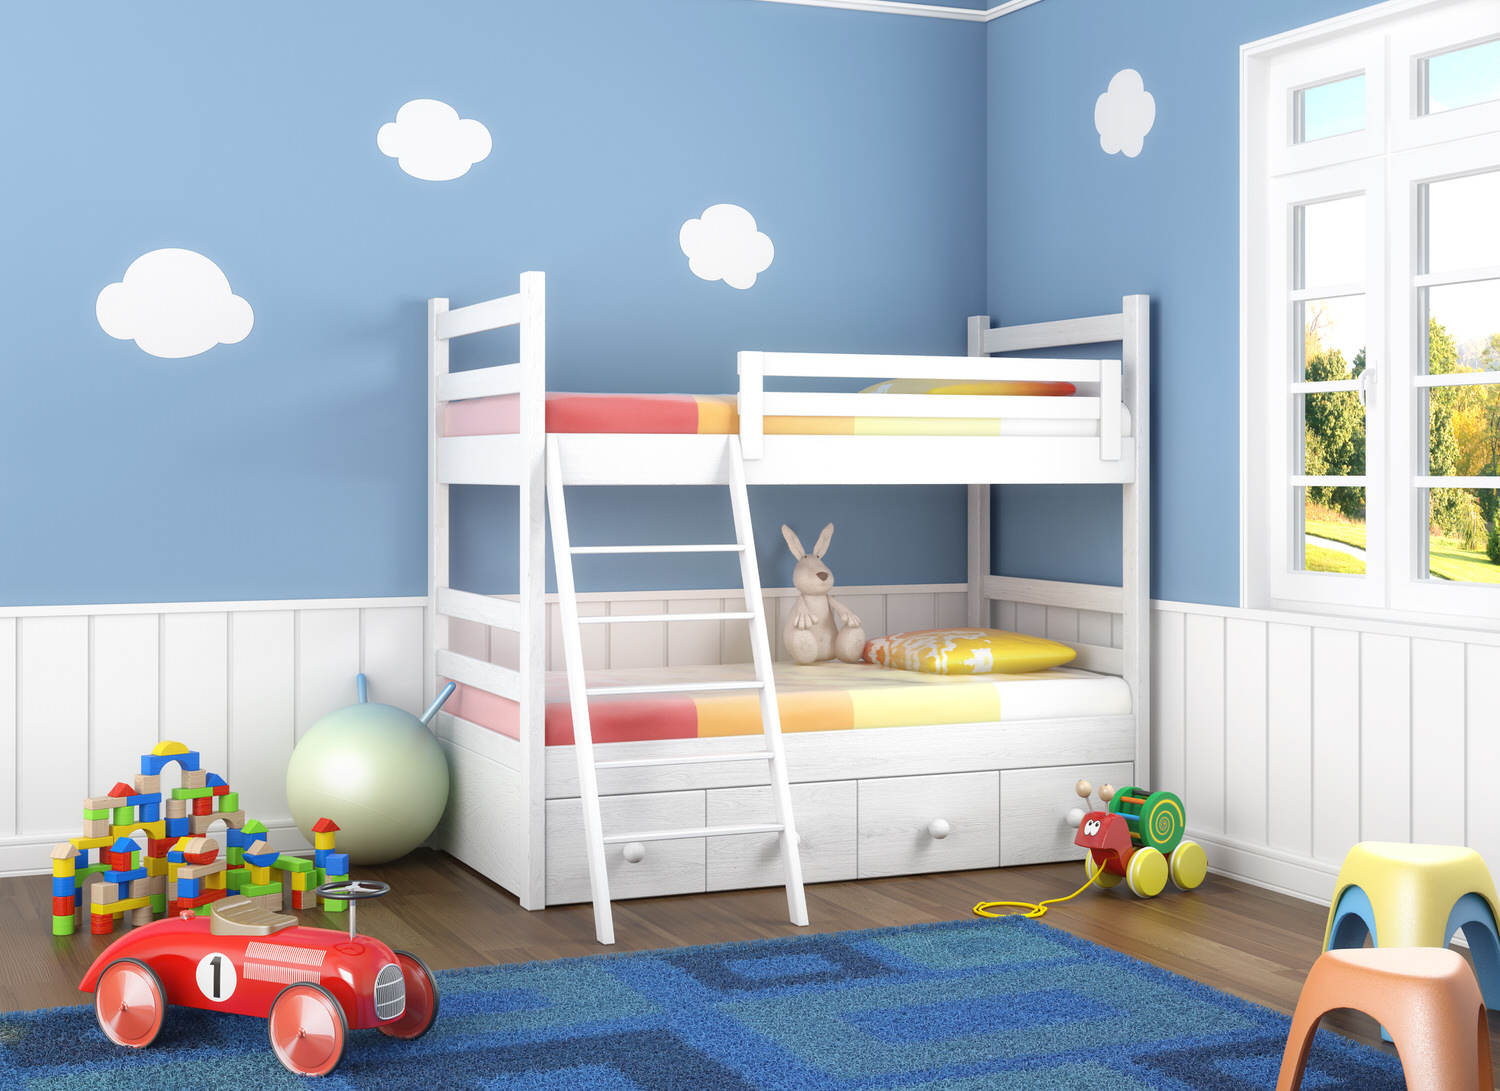 kinderzimmer planen hausgestaltung ideen. Black Bedroom Furniture Sets. Home Design Ideas